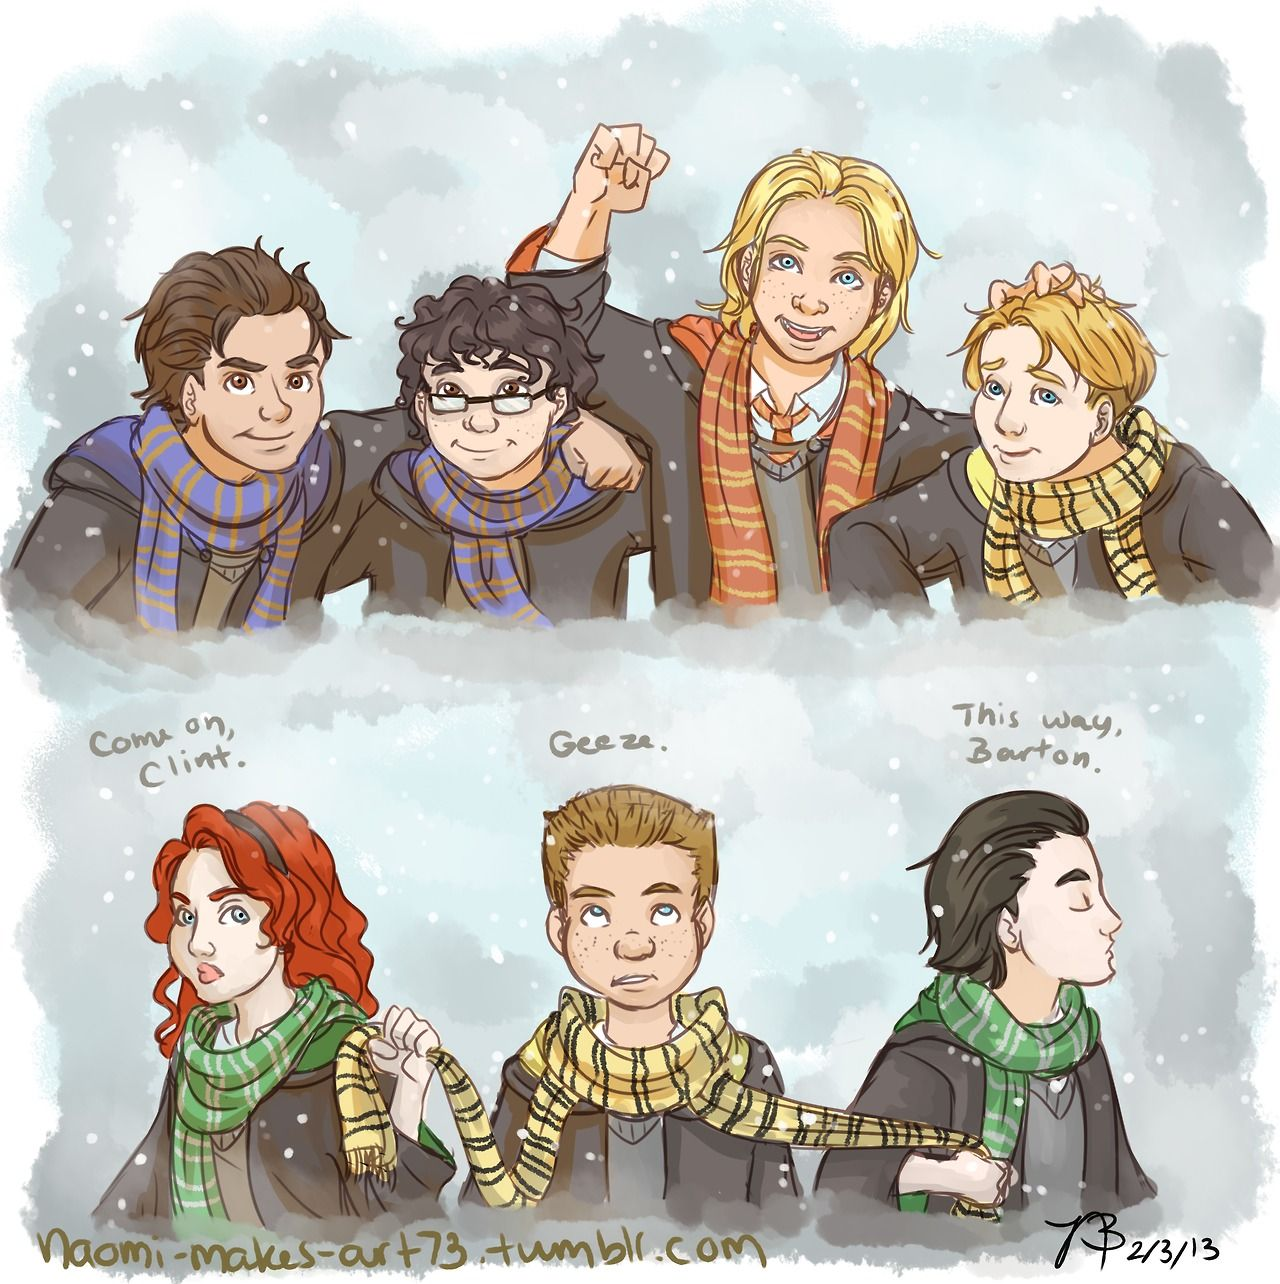 the avengers hogwarts Crossover | Fanart: The MCU Avengers in